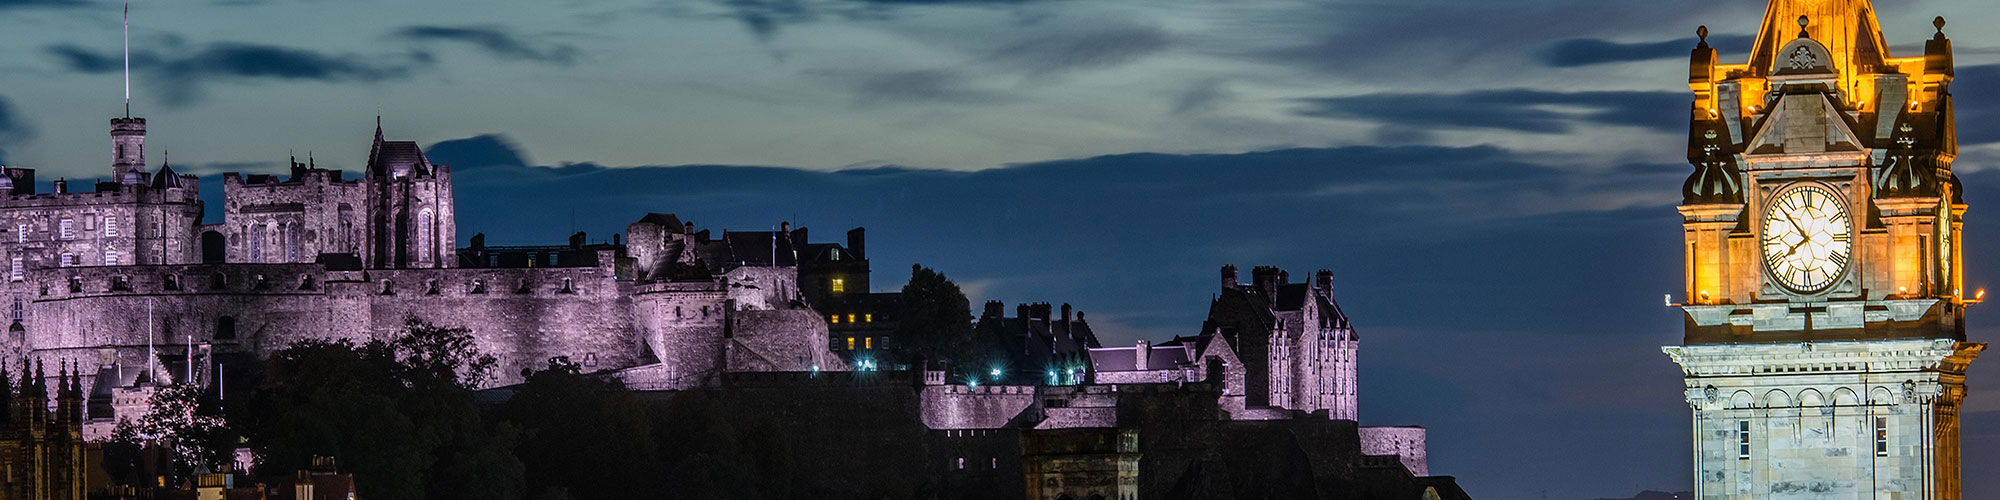 Scottish Castle in Evening with Clock Tower